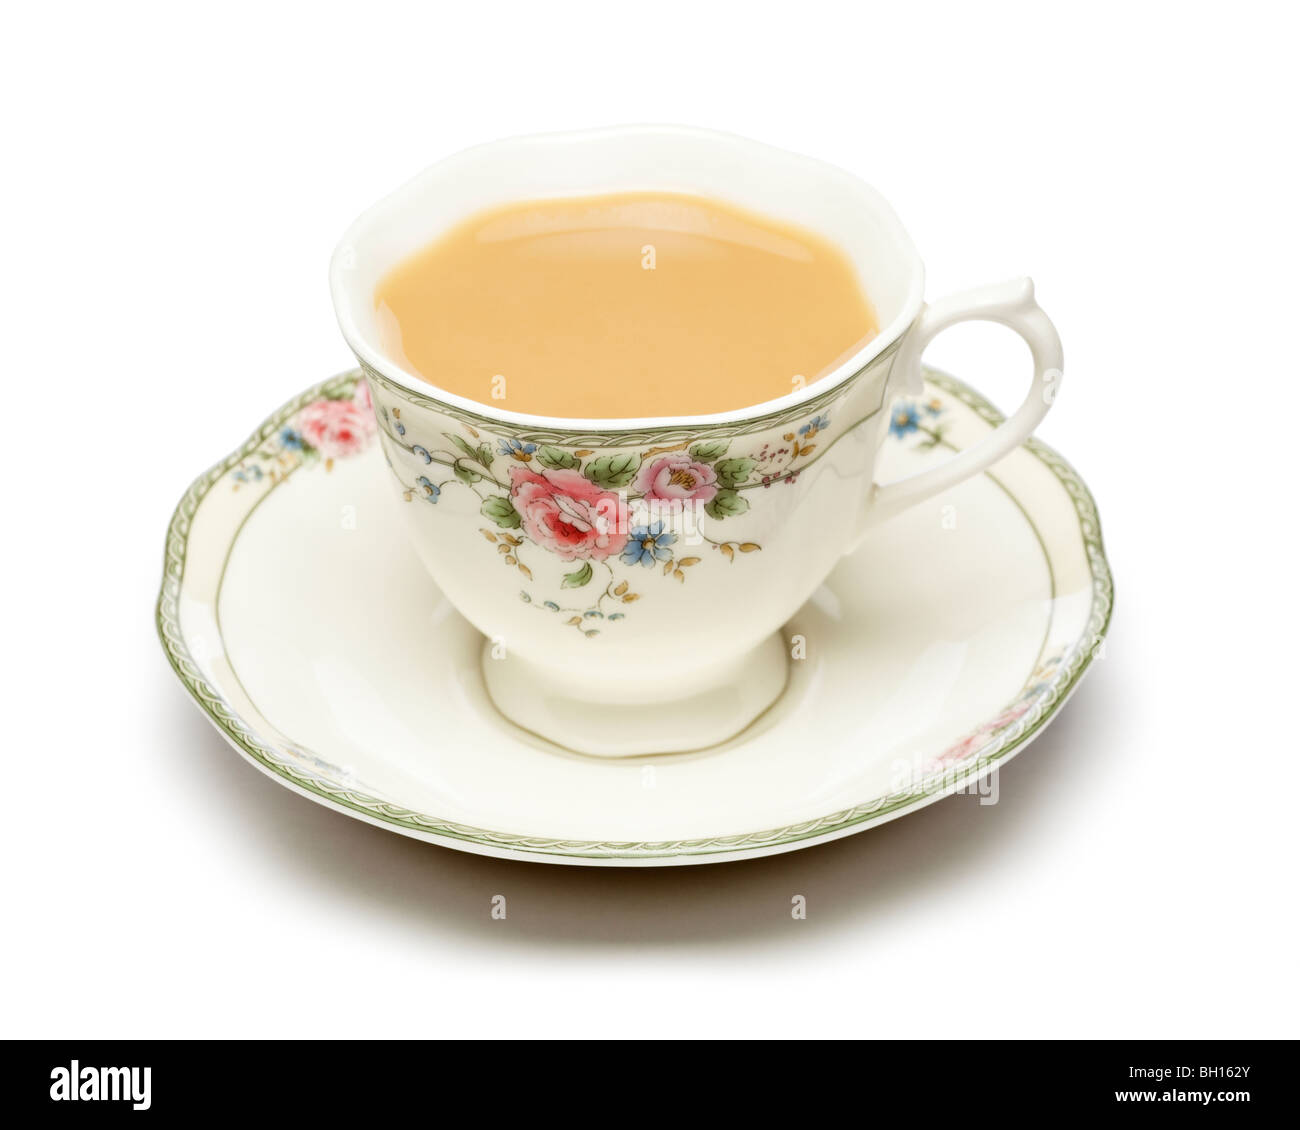 Cup of tea - Stock Image